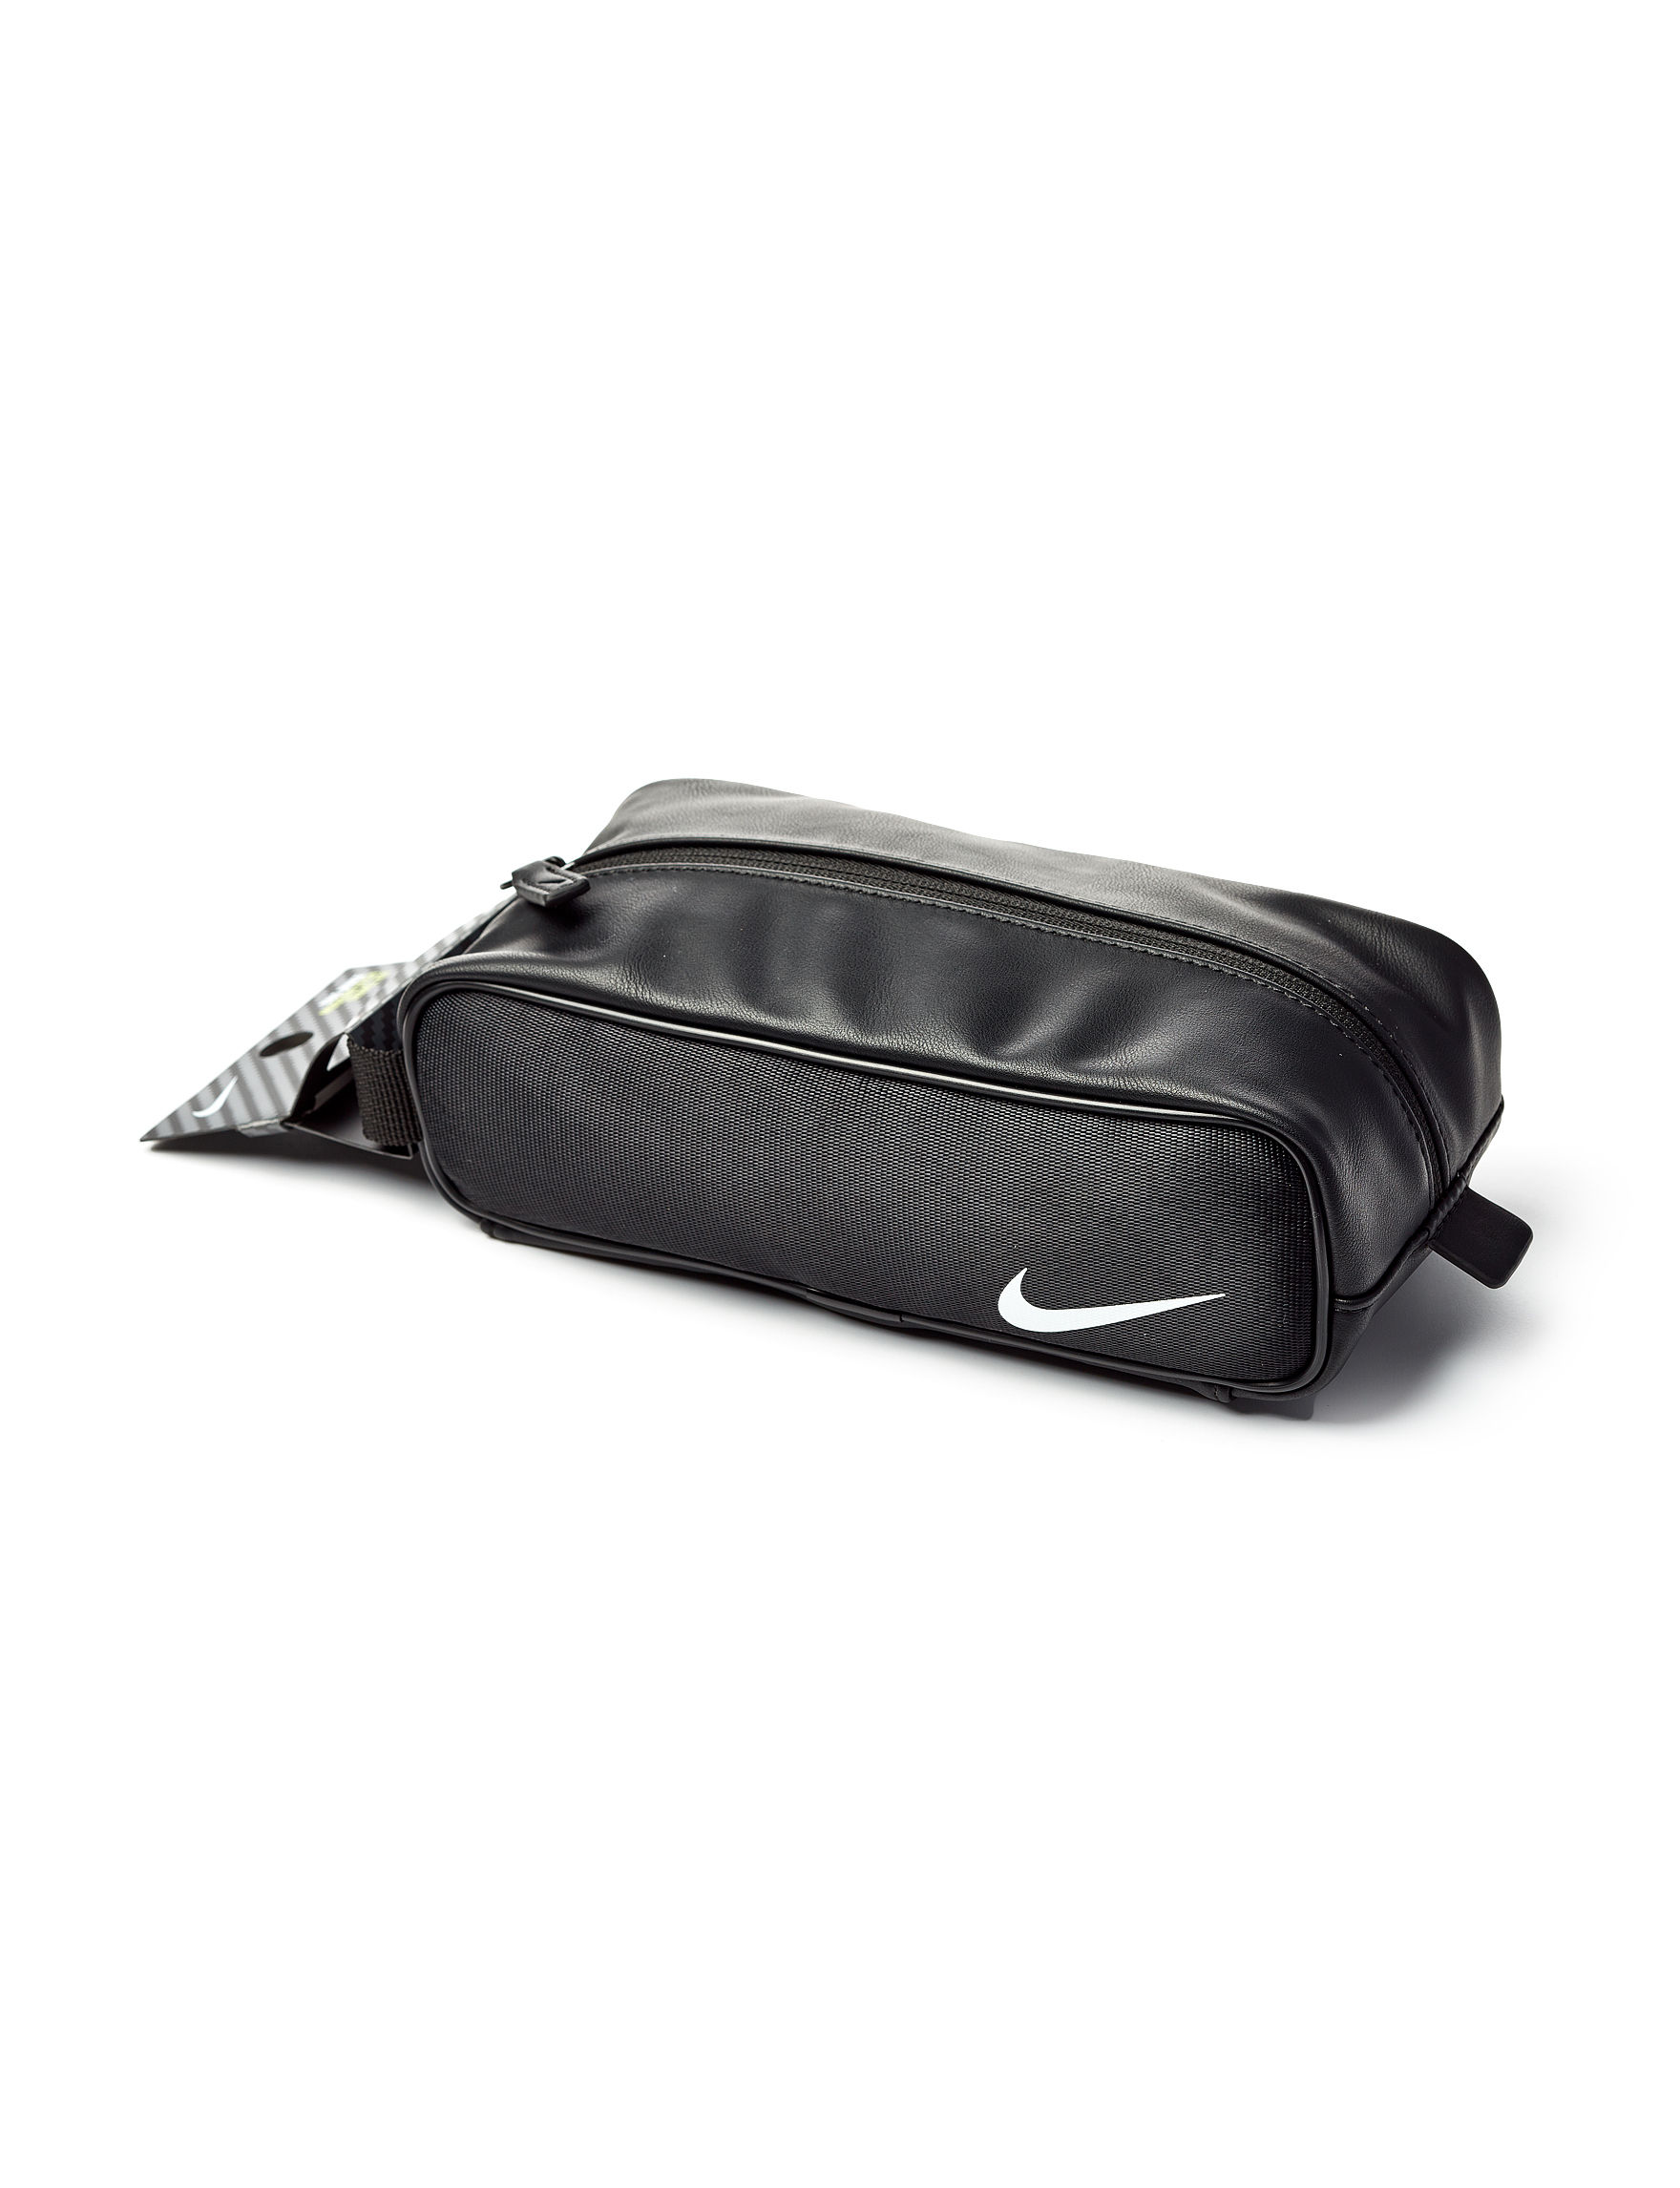 Nike Black Travel Accessories